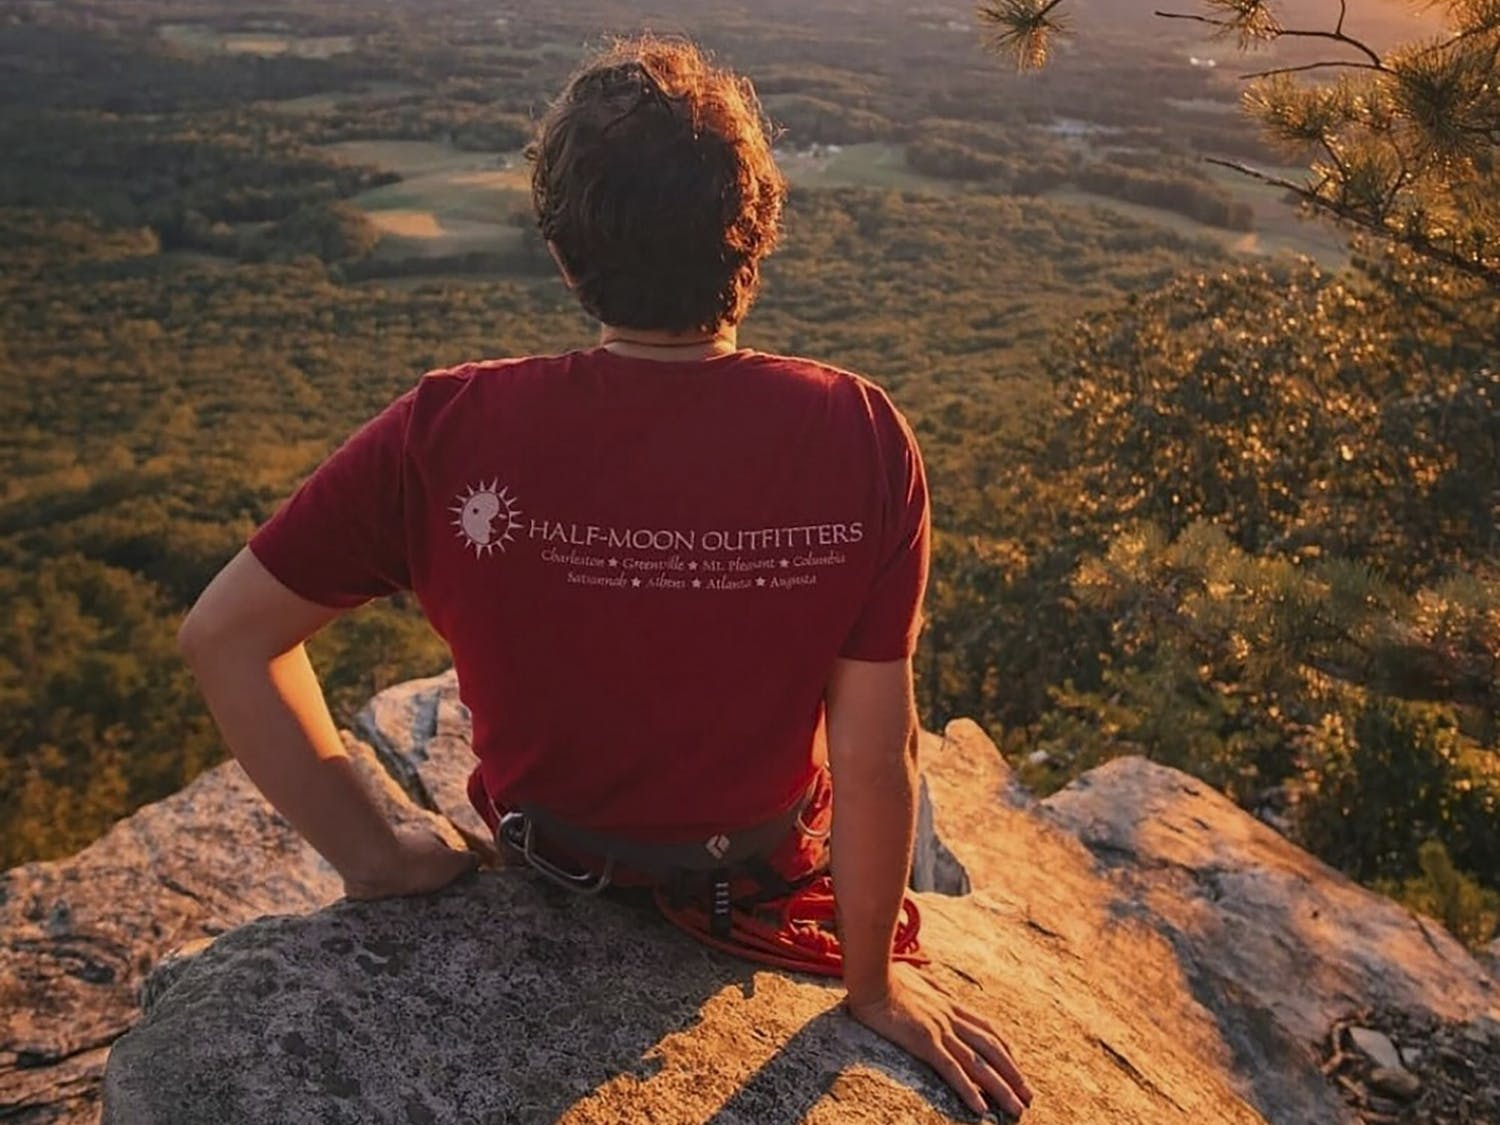 The Carolina Mountaineering and White Water Club can be found scaling mountains and exploring the outdoors to get to beautiful summits of the Carolina mountains.